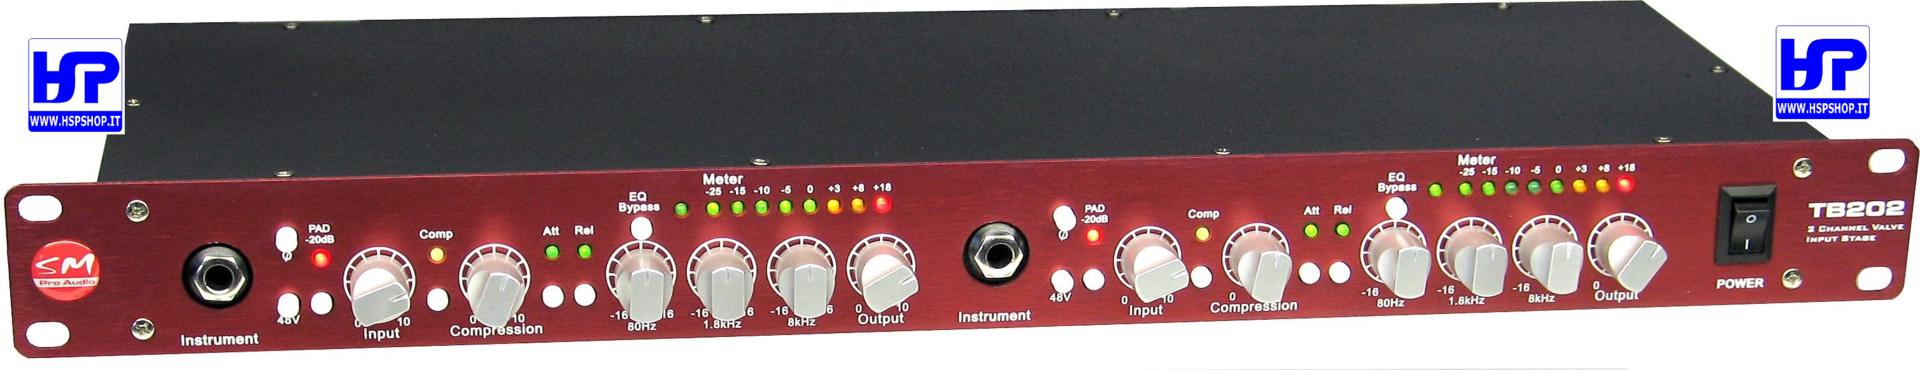 SM PRO AUDIO - TB202 - PREAMPLIFICATORE MIC.